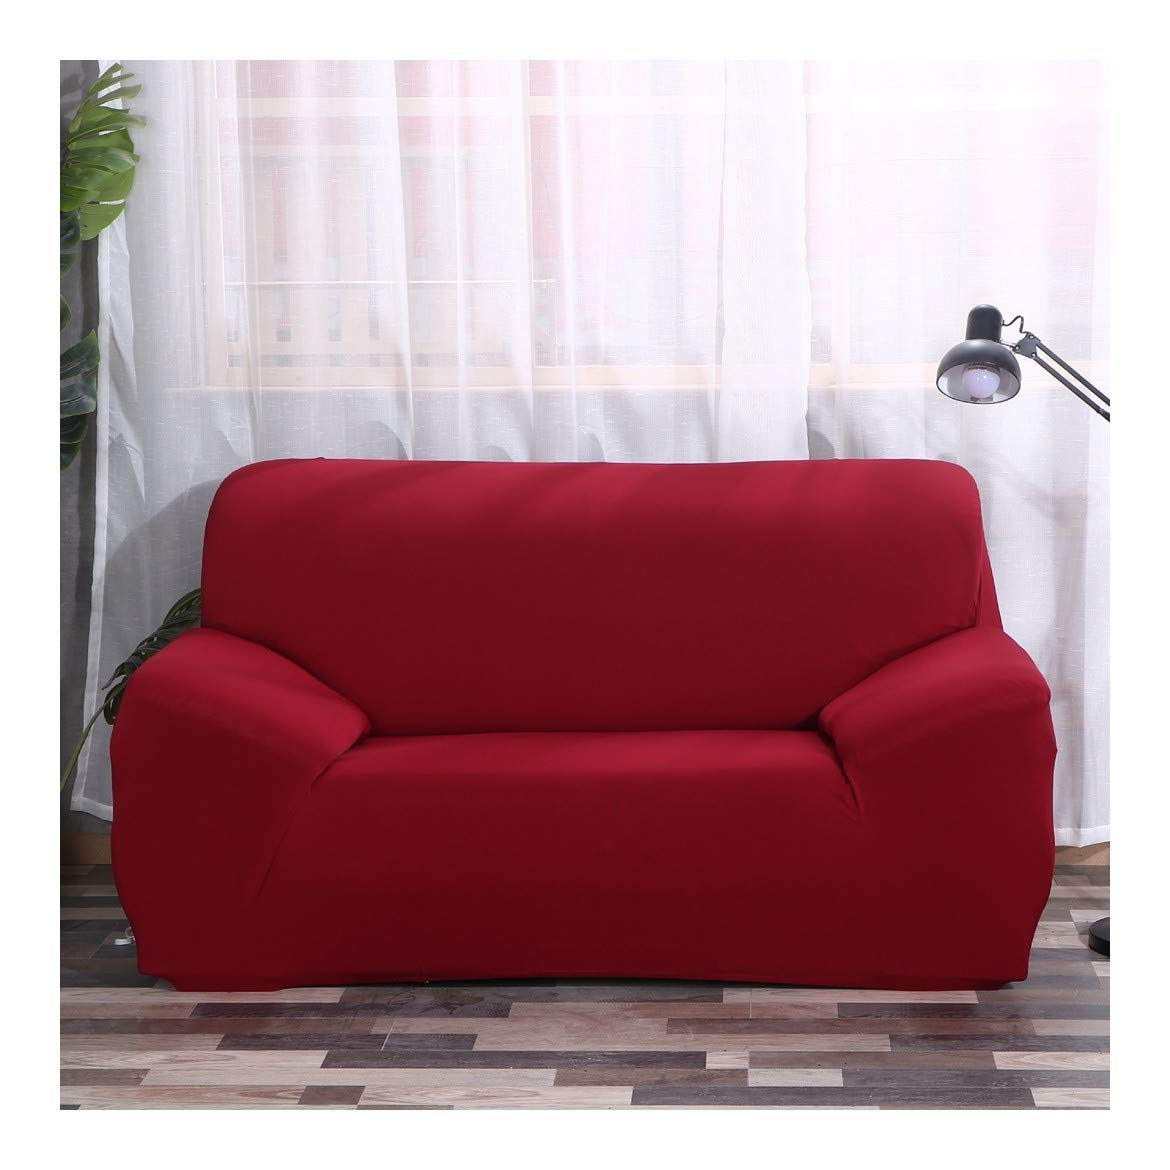 4seat VGUYFUYH Wine Red Seasons Universal Sofa Cover Full Package Elasticity Home Universal Sofa Cover Simple Fashion One Set Durable Dust-Proof Pet Dog Predective Cover,4Seat